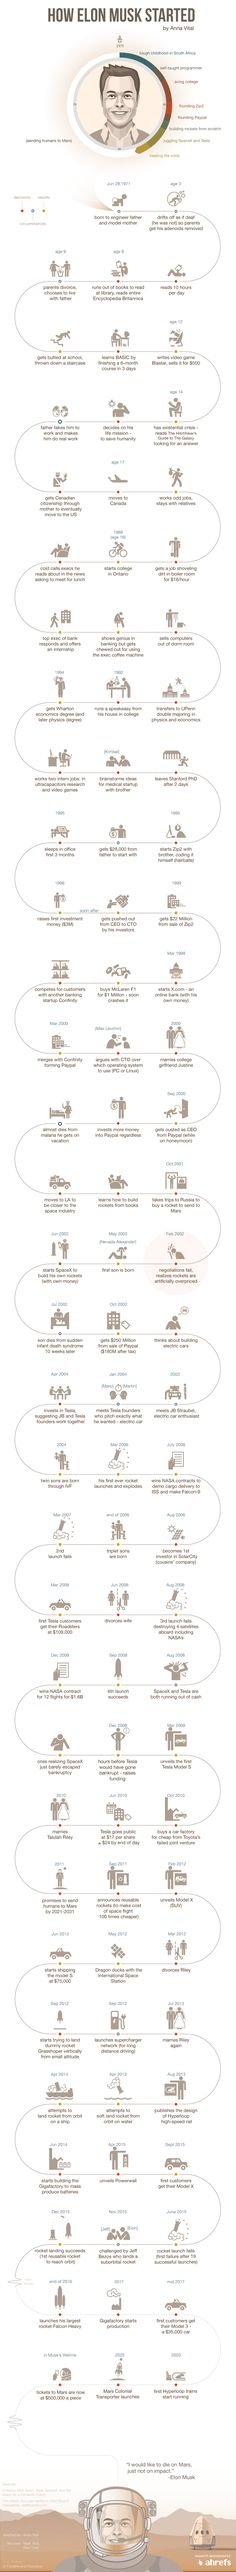 How did Elon Musk become the visionary he is today? This infographic shows the entrepreneur's fascinating path. @elonmusk